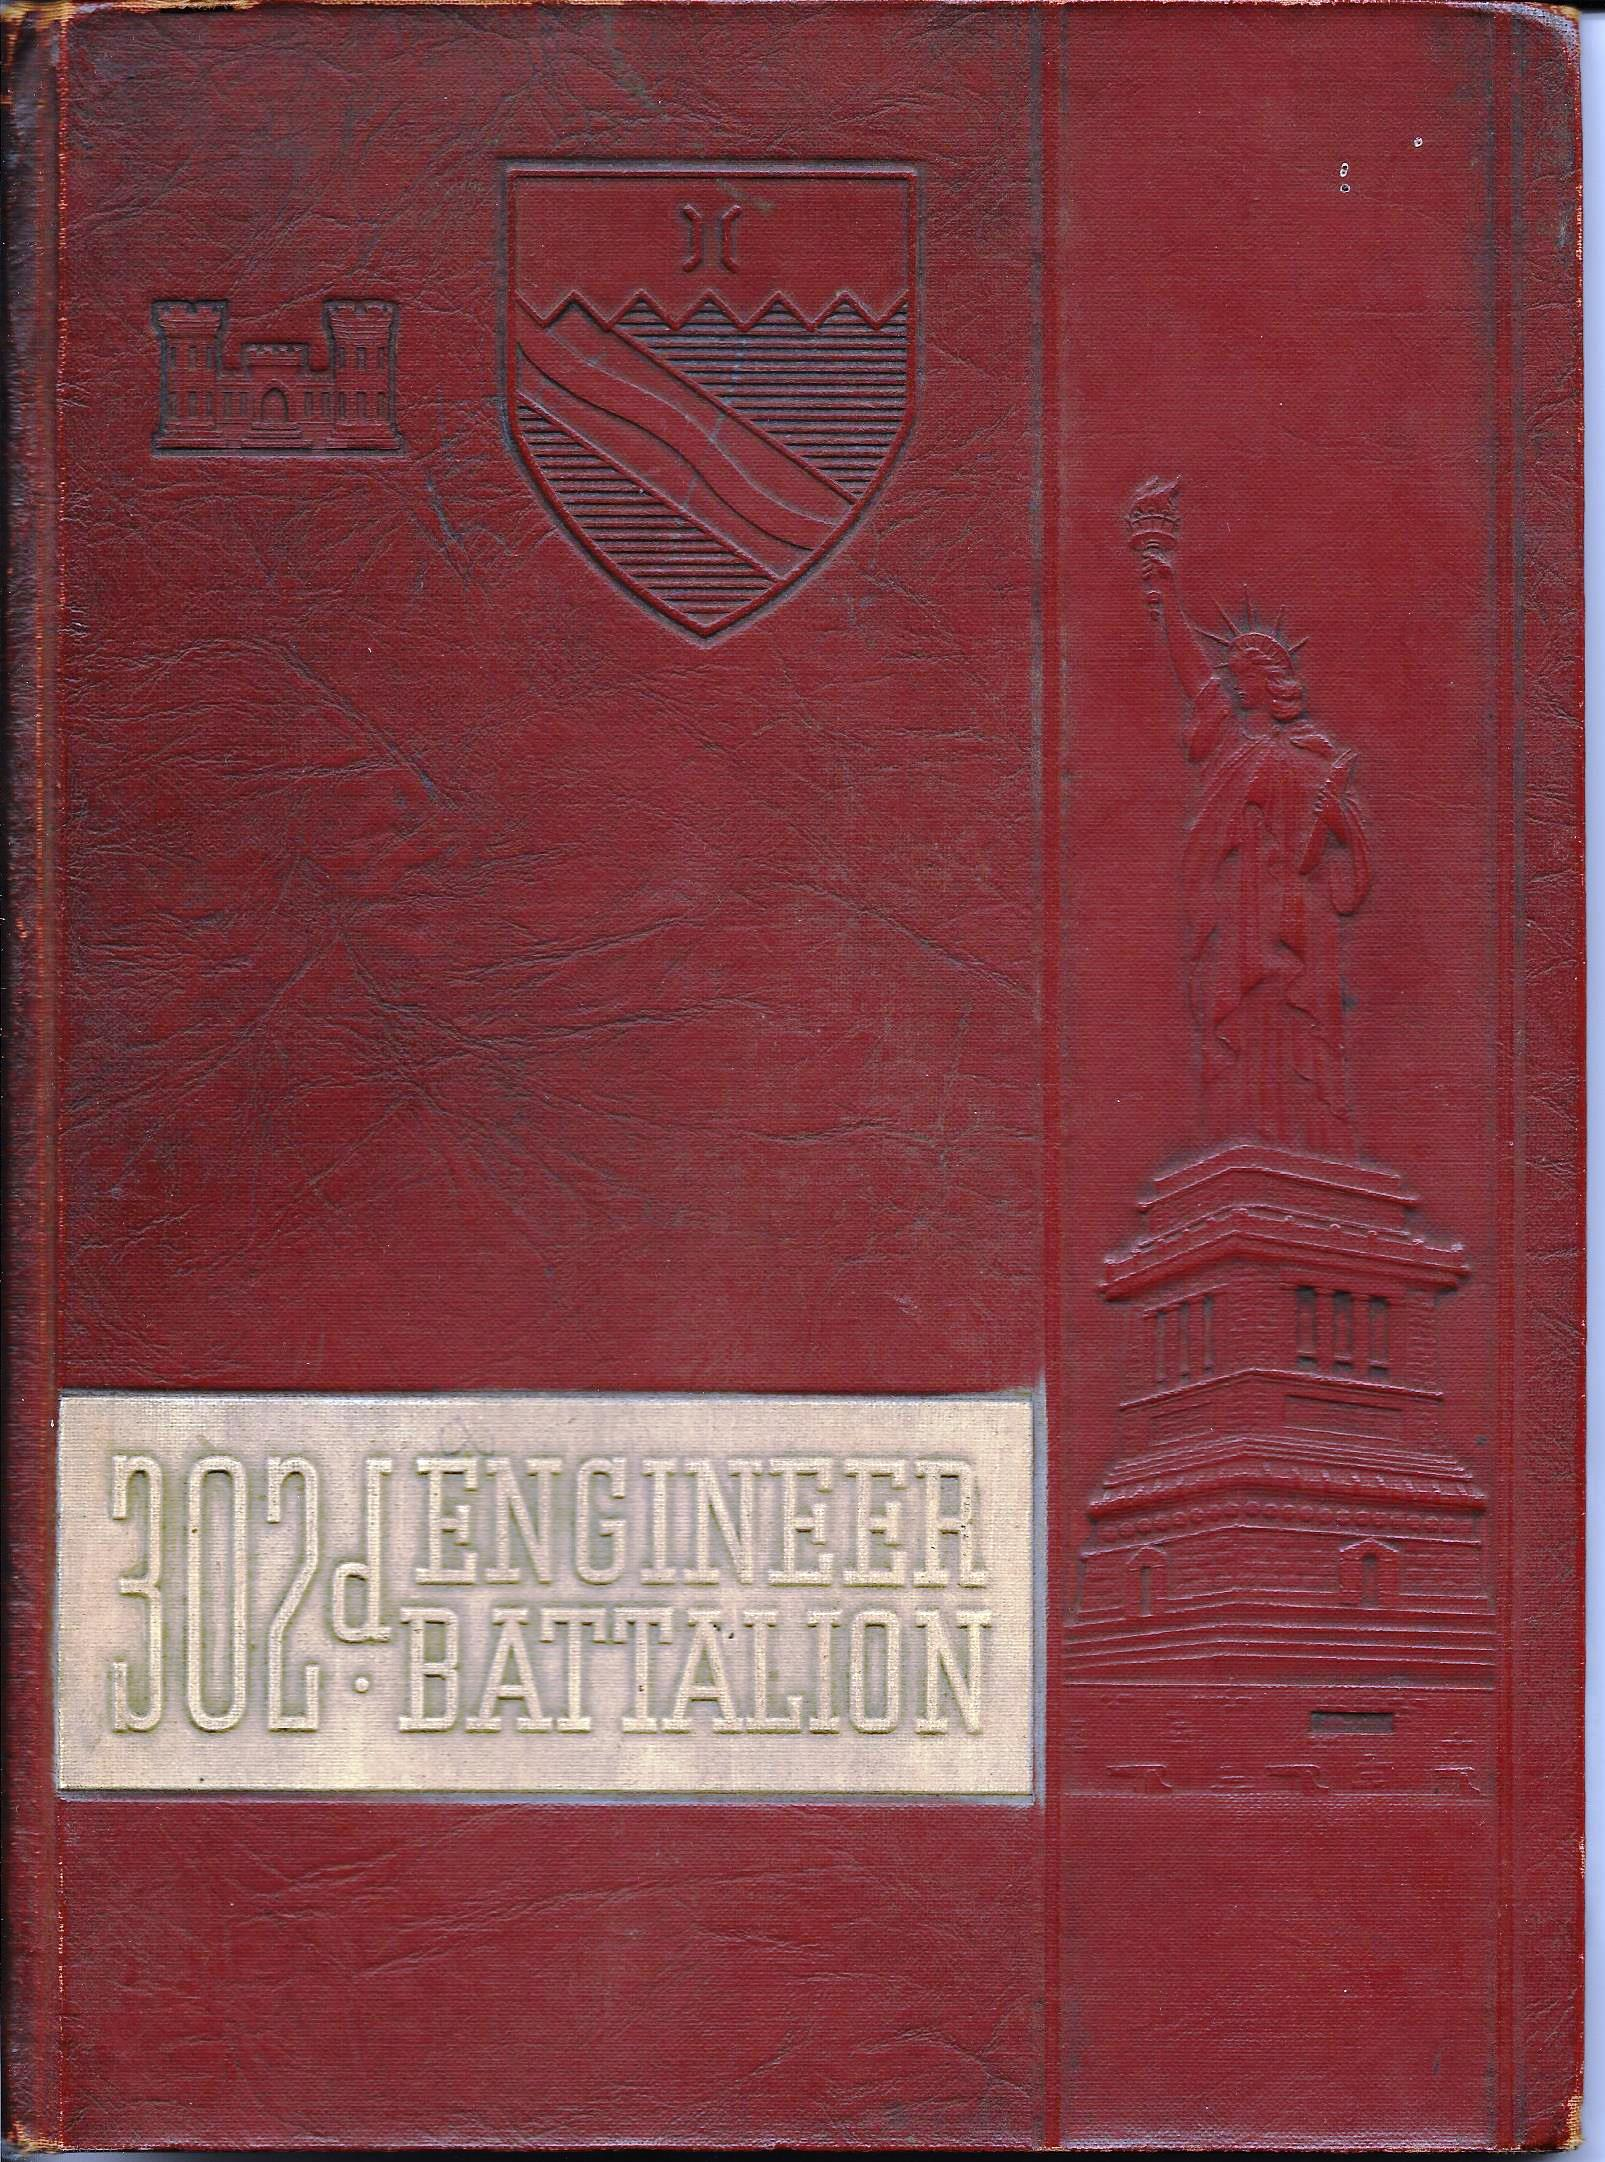 WWII yearbook cover